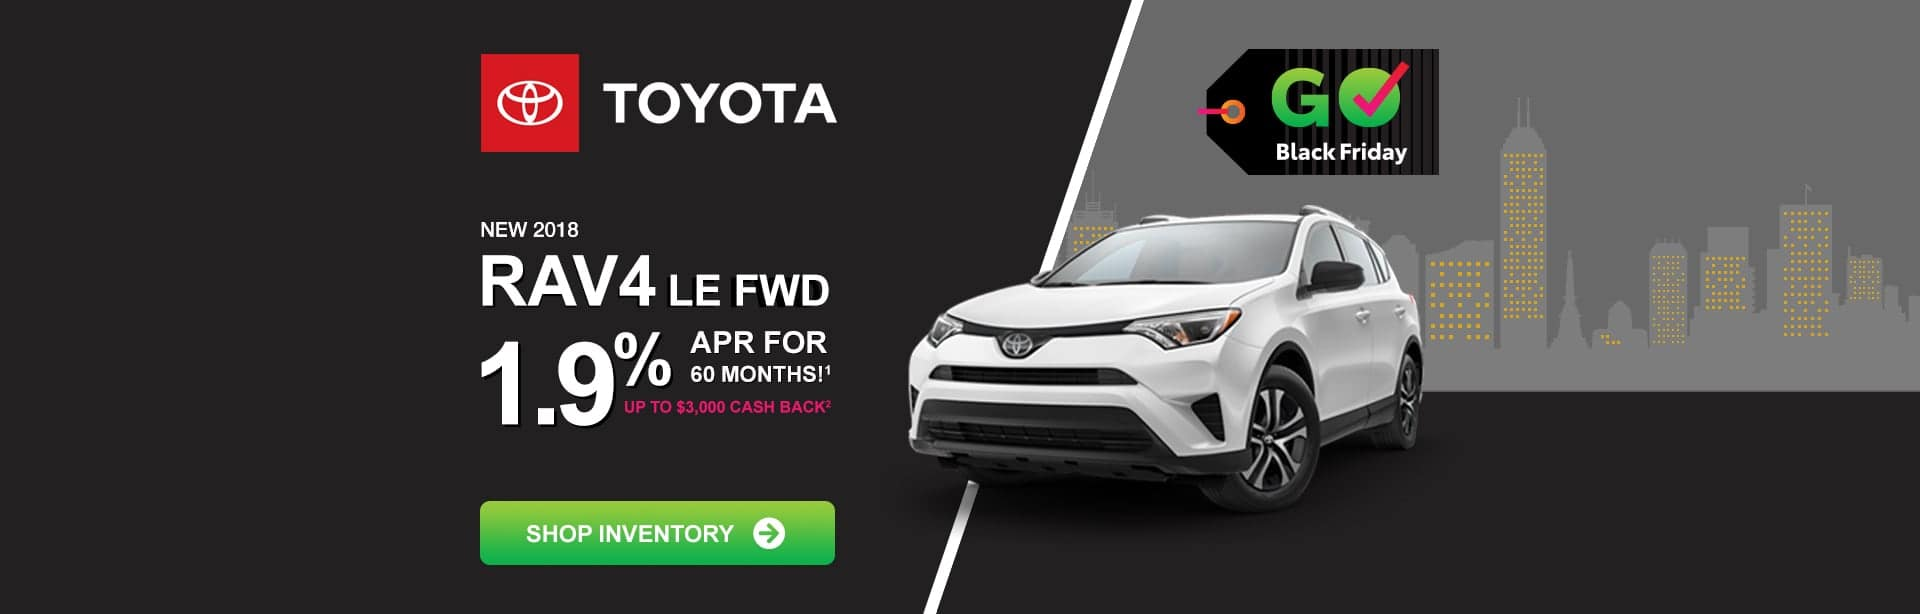 Toyota RAV4 Black Friday pricing near Indianapolis